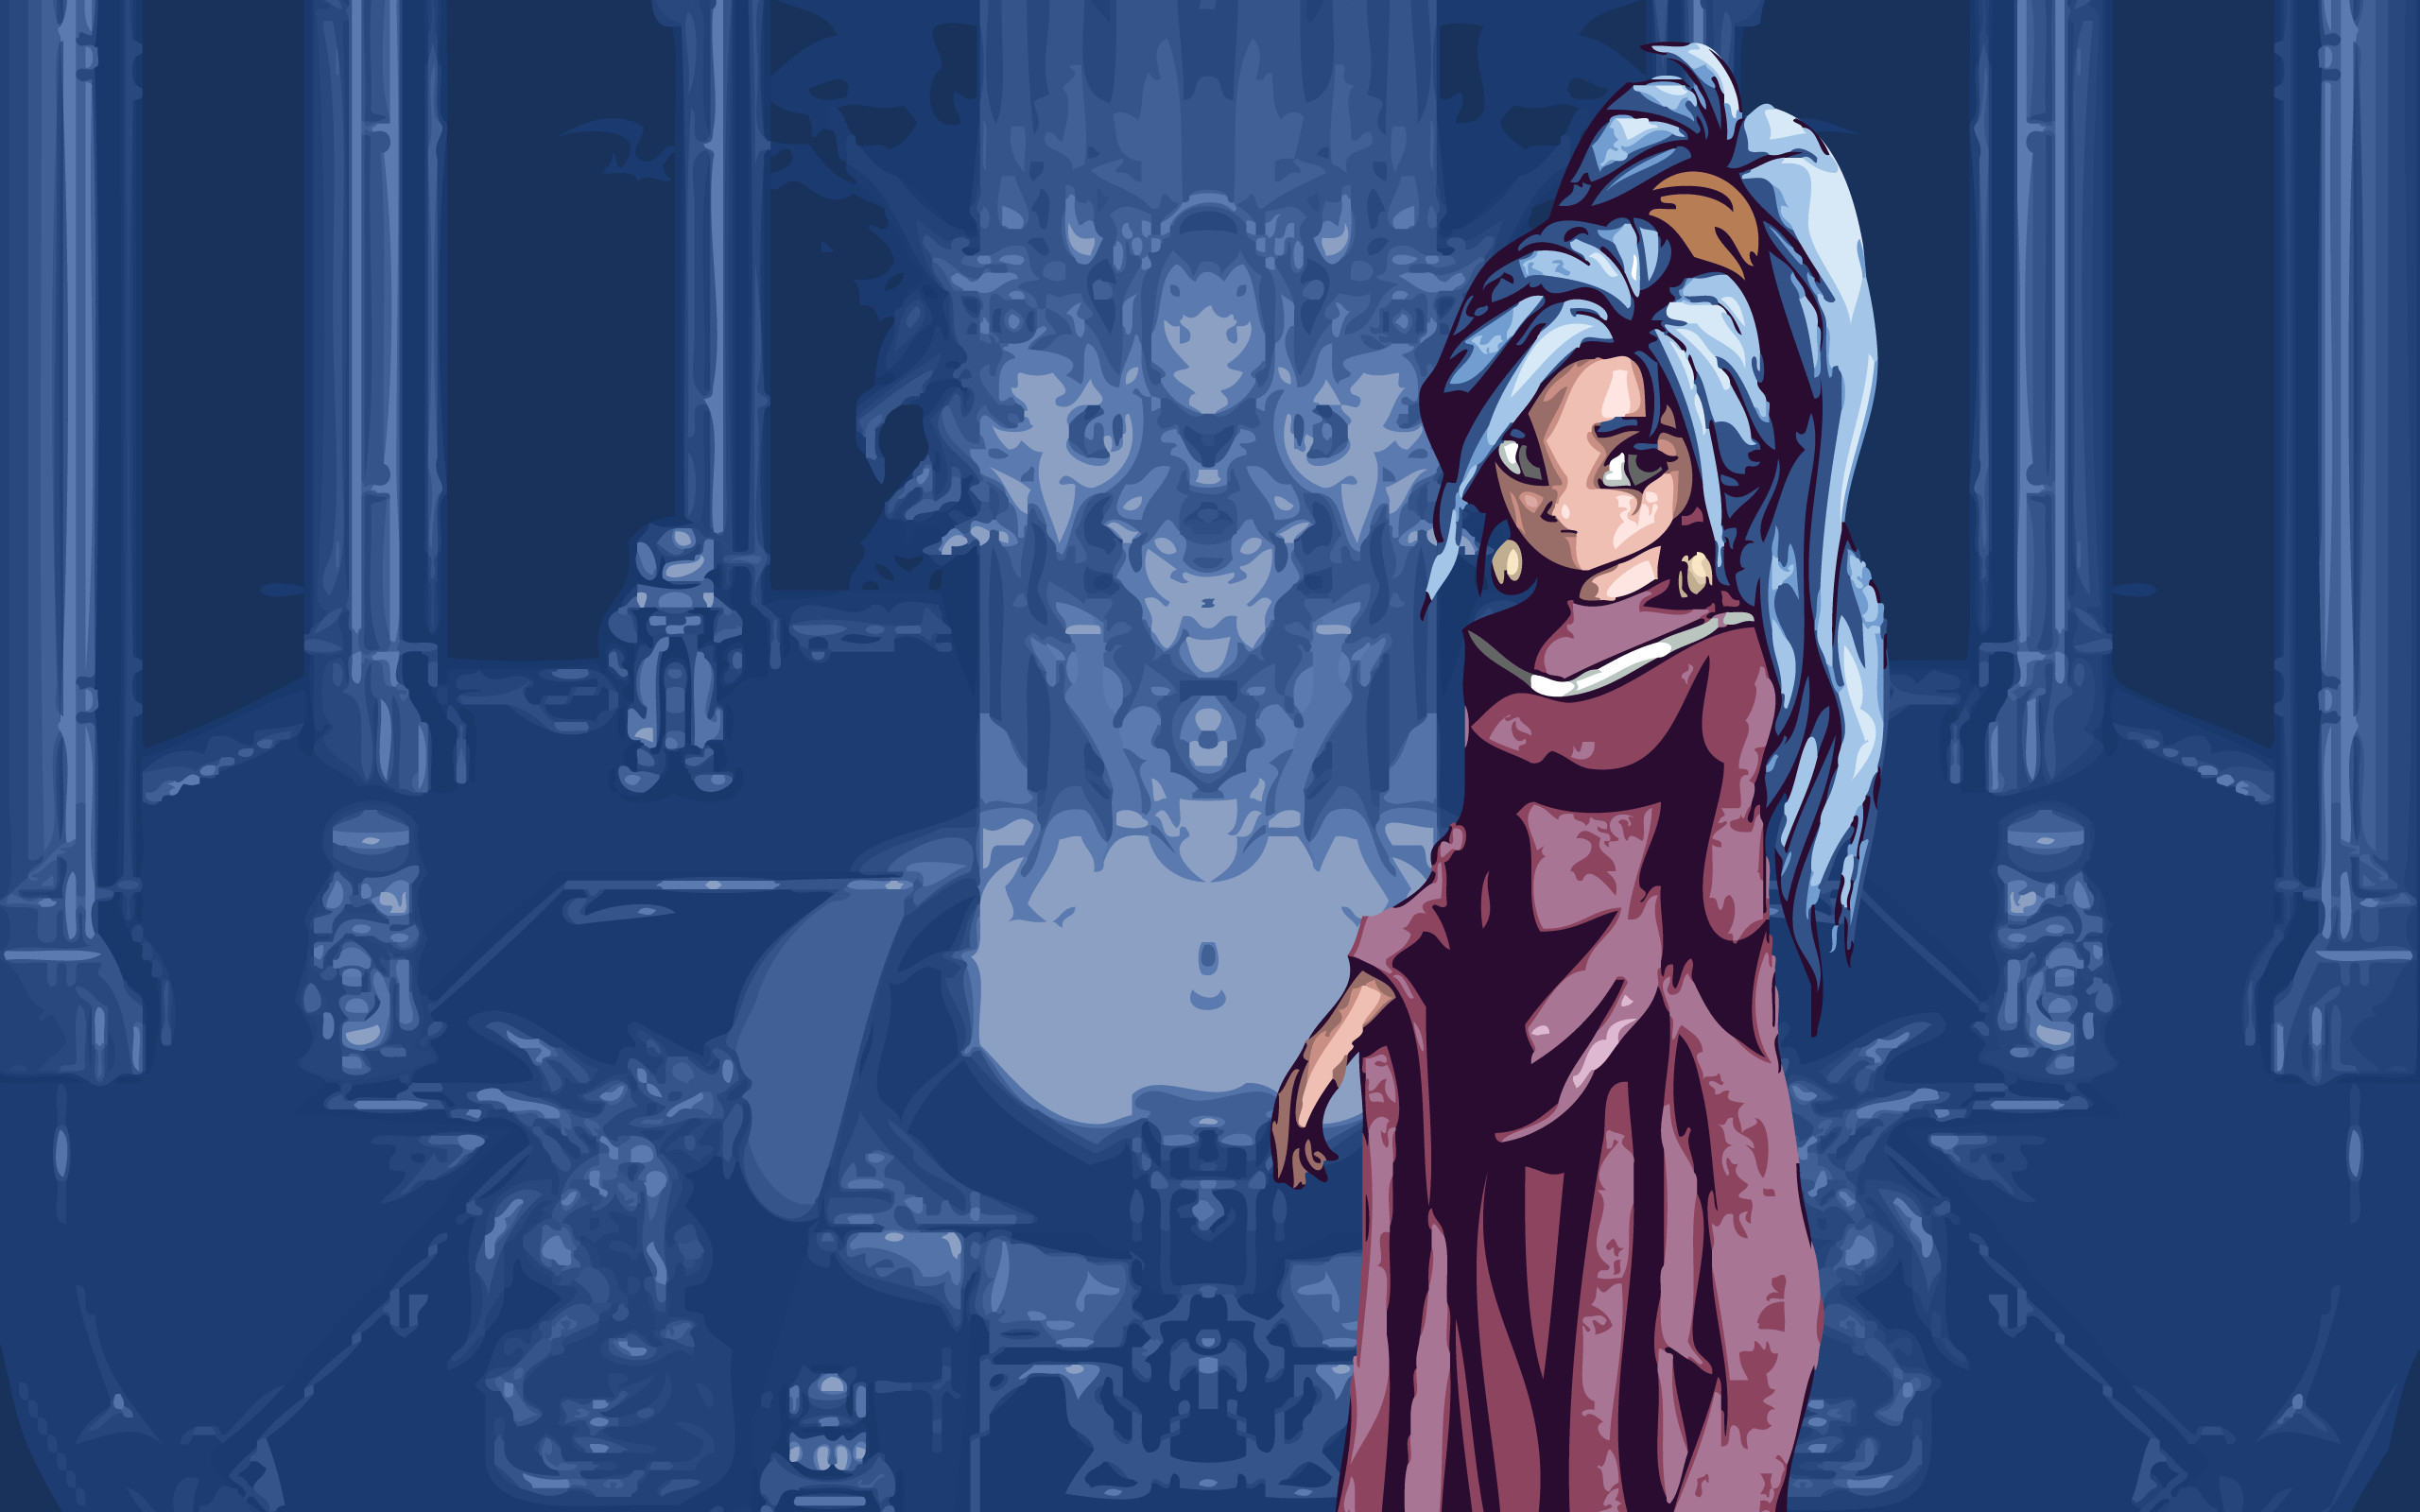 Res: 2560x1600, Video Game - Chrono Trigger Wallpaper